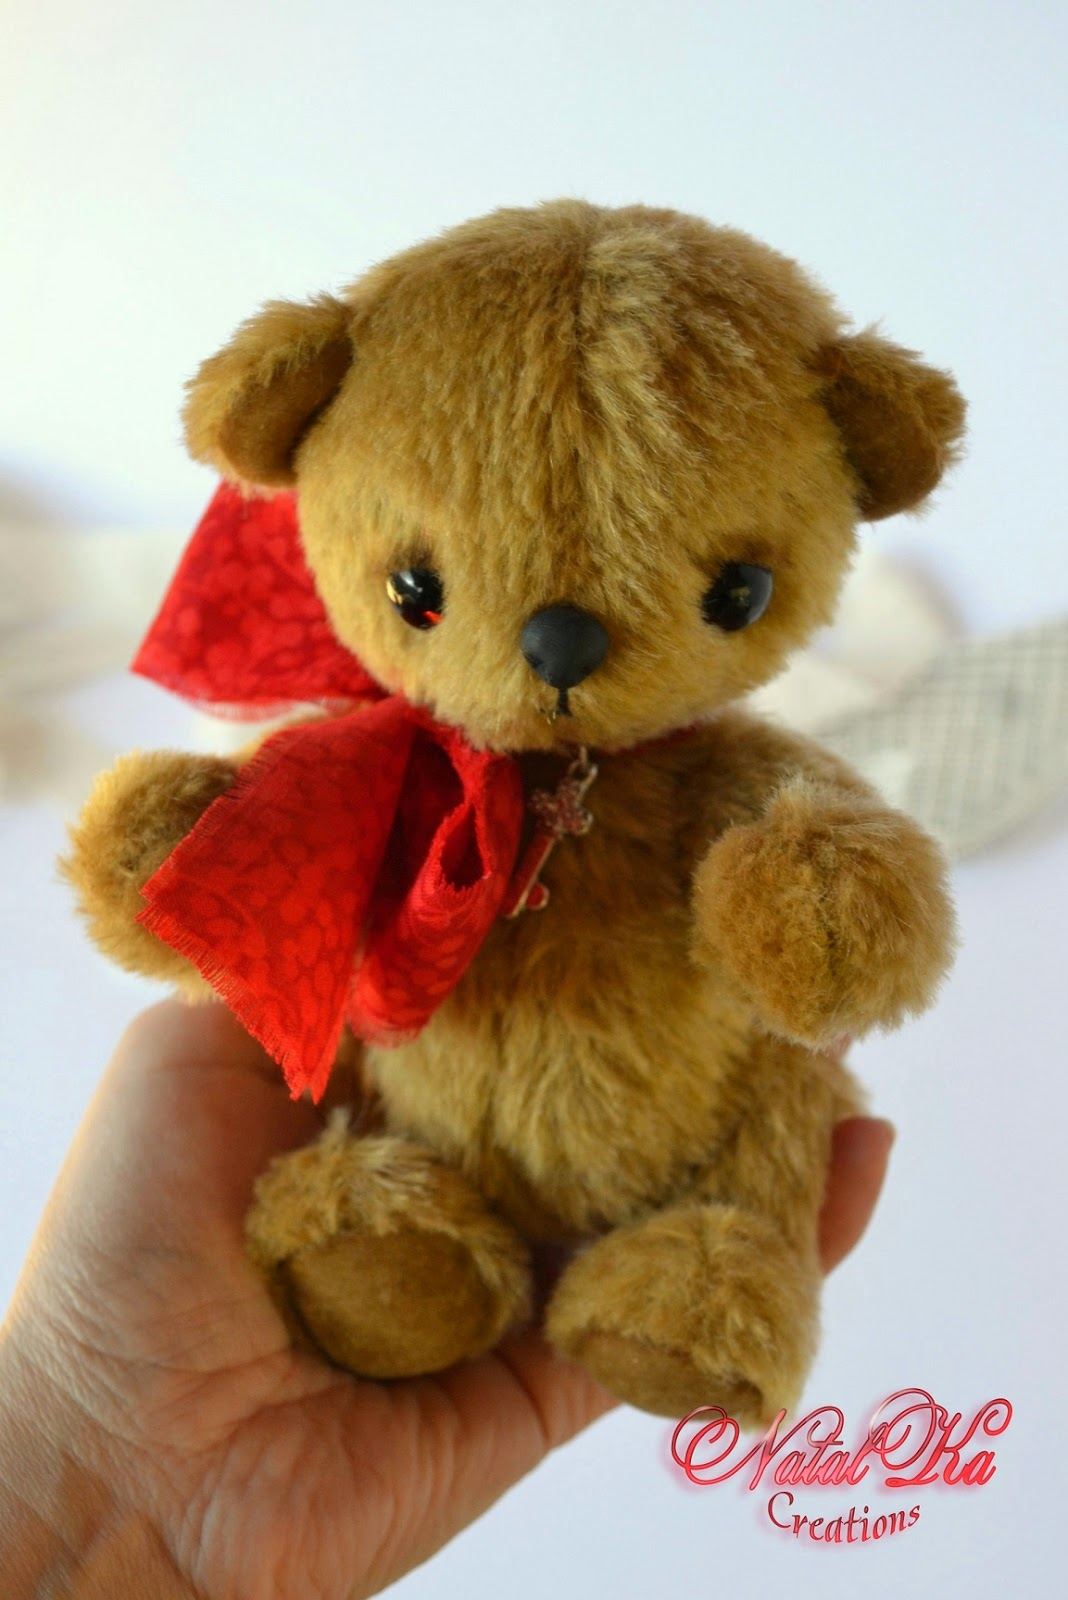 Artist teddy bear handmade by NatalKa Creations.